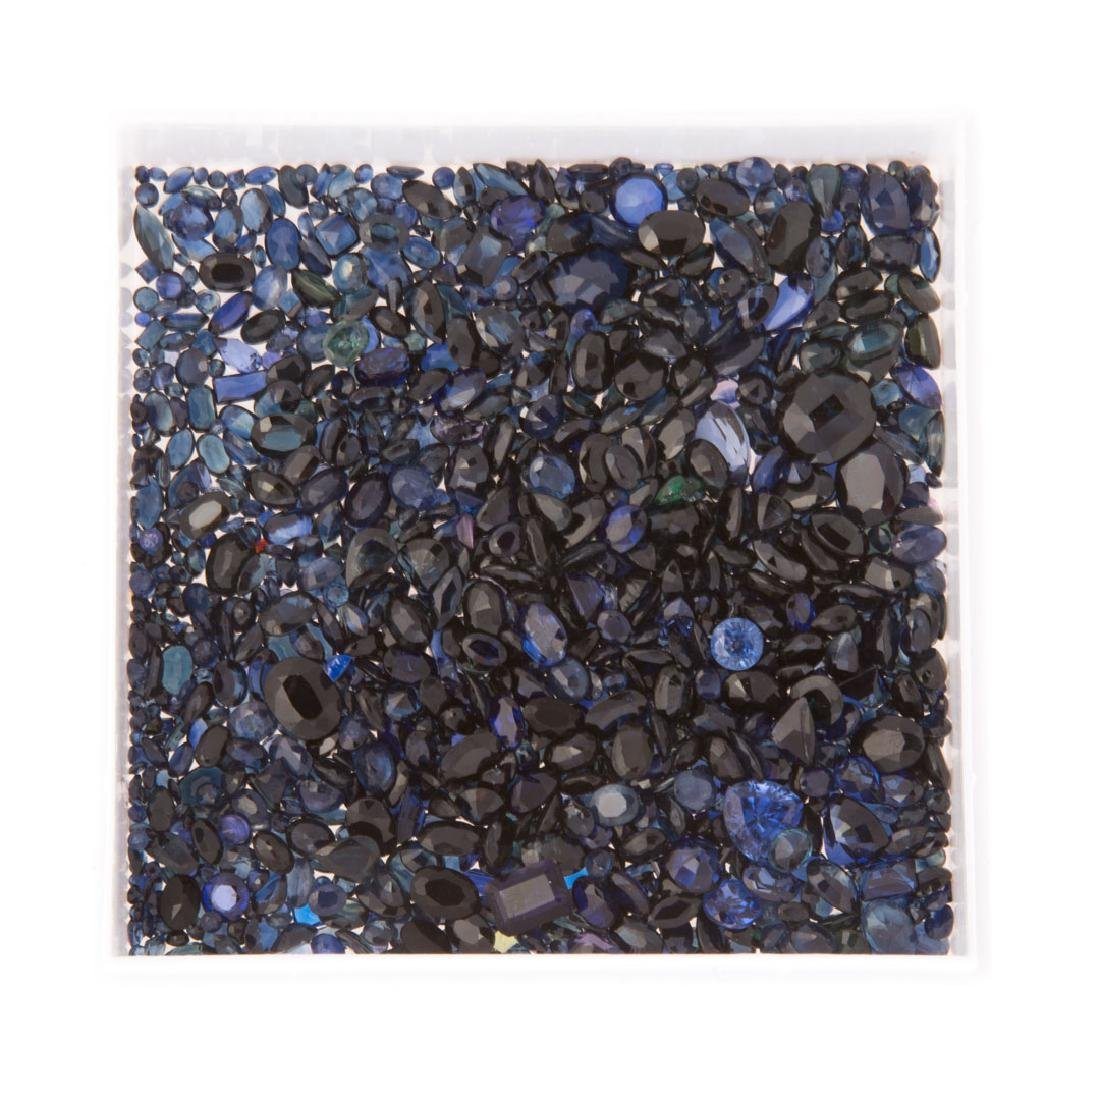 A Box of Loose Sapphires Weighing 362 Carats